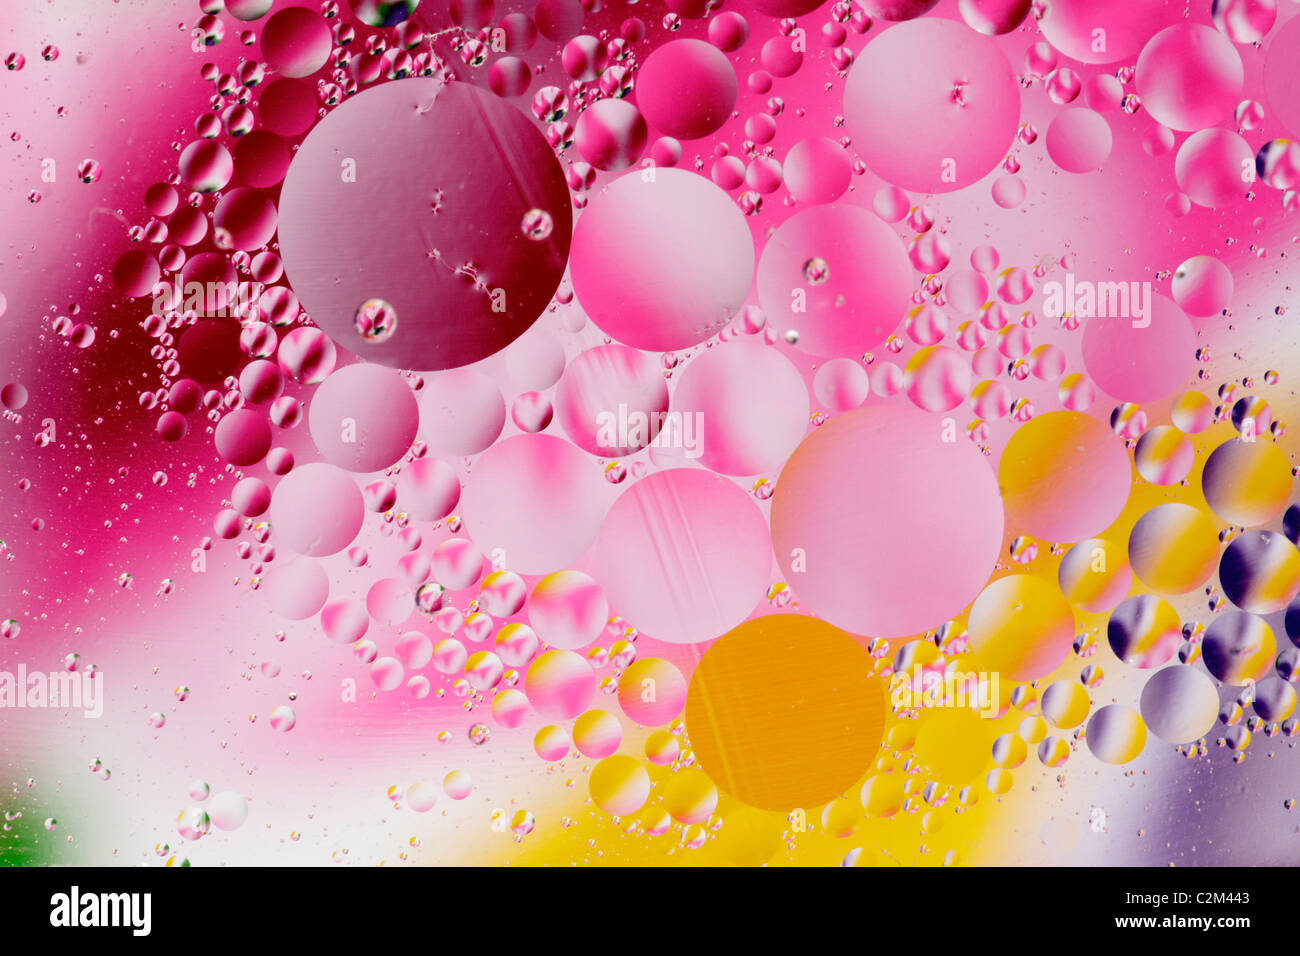 Macro closeup of cooking oil bubbles in water-Victoria, British Columbia, Canada. - Stock Image